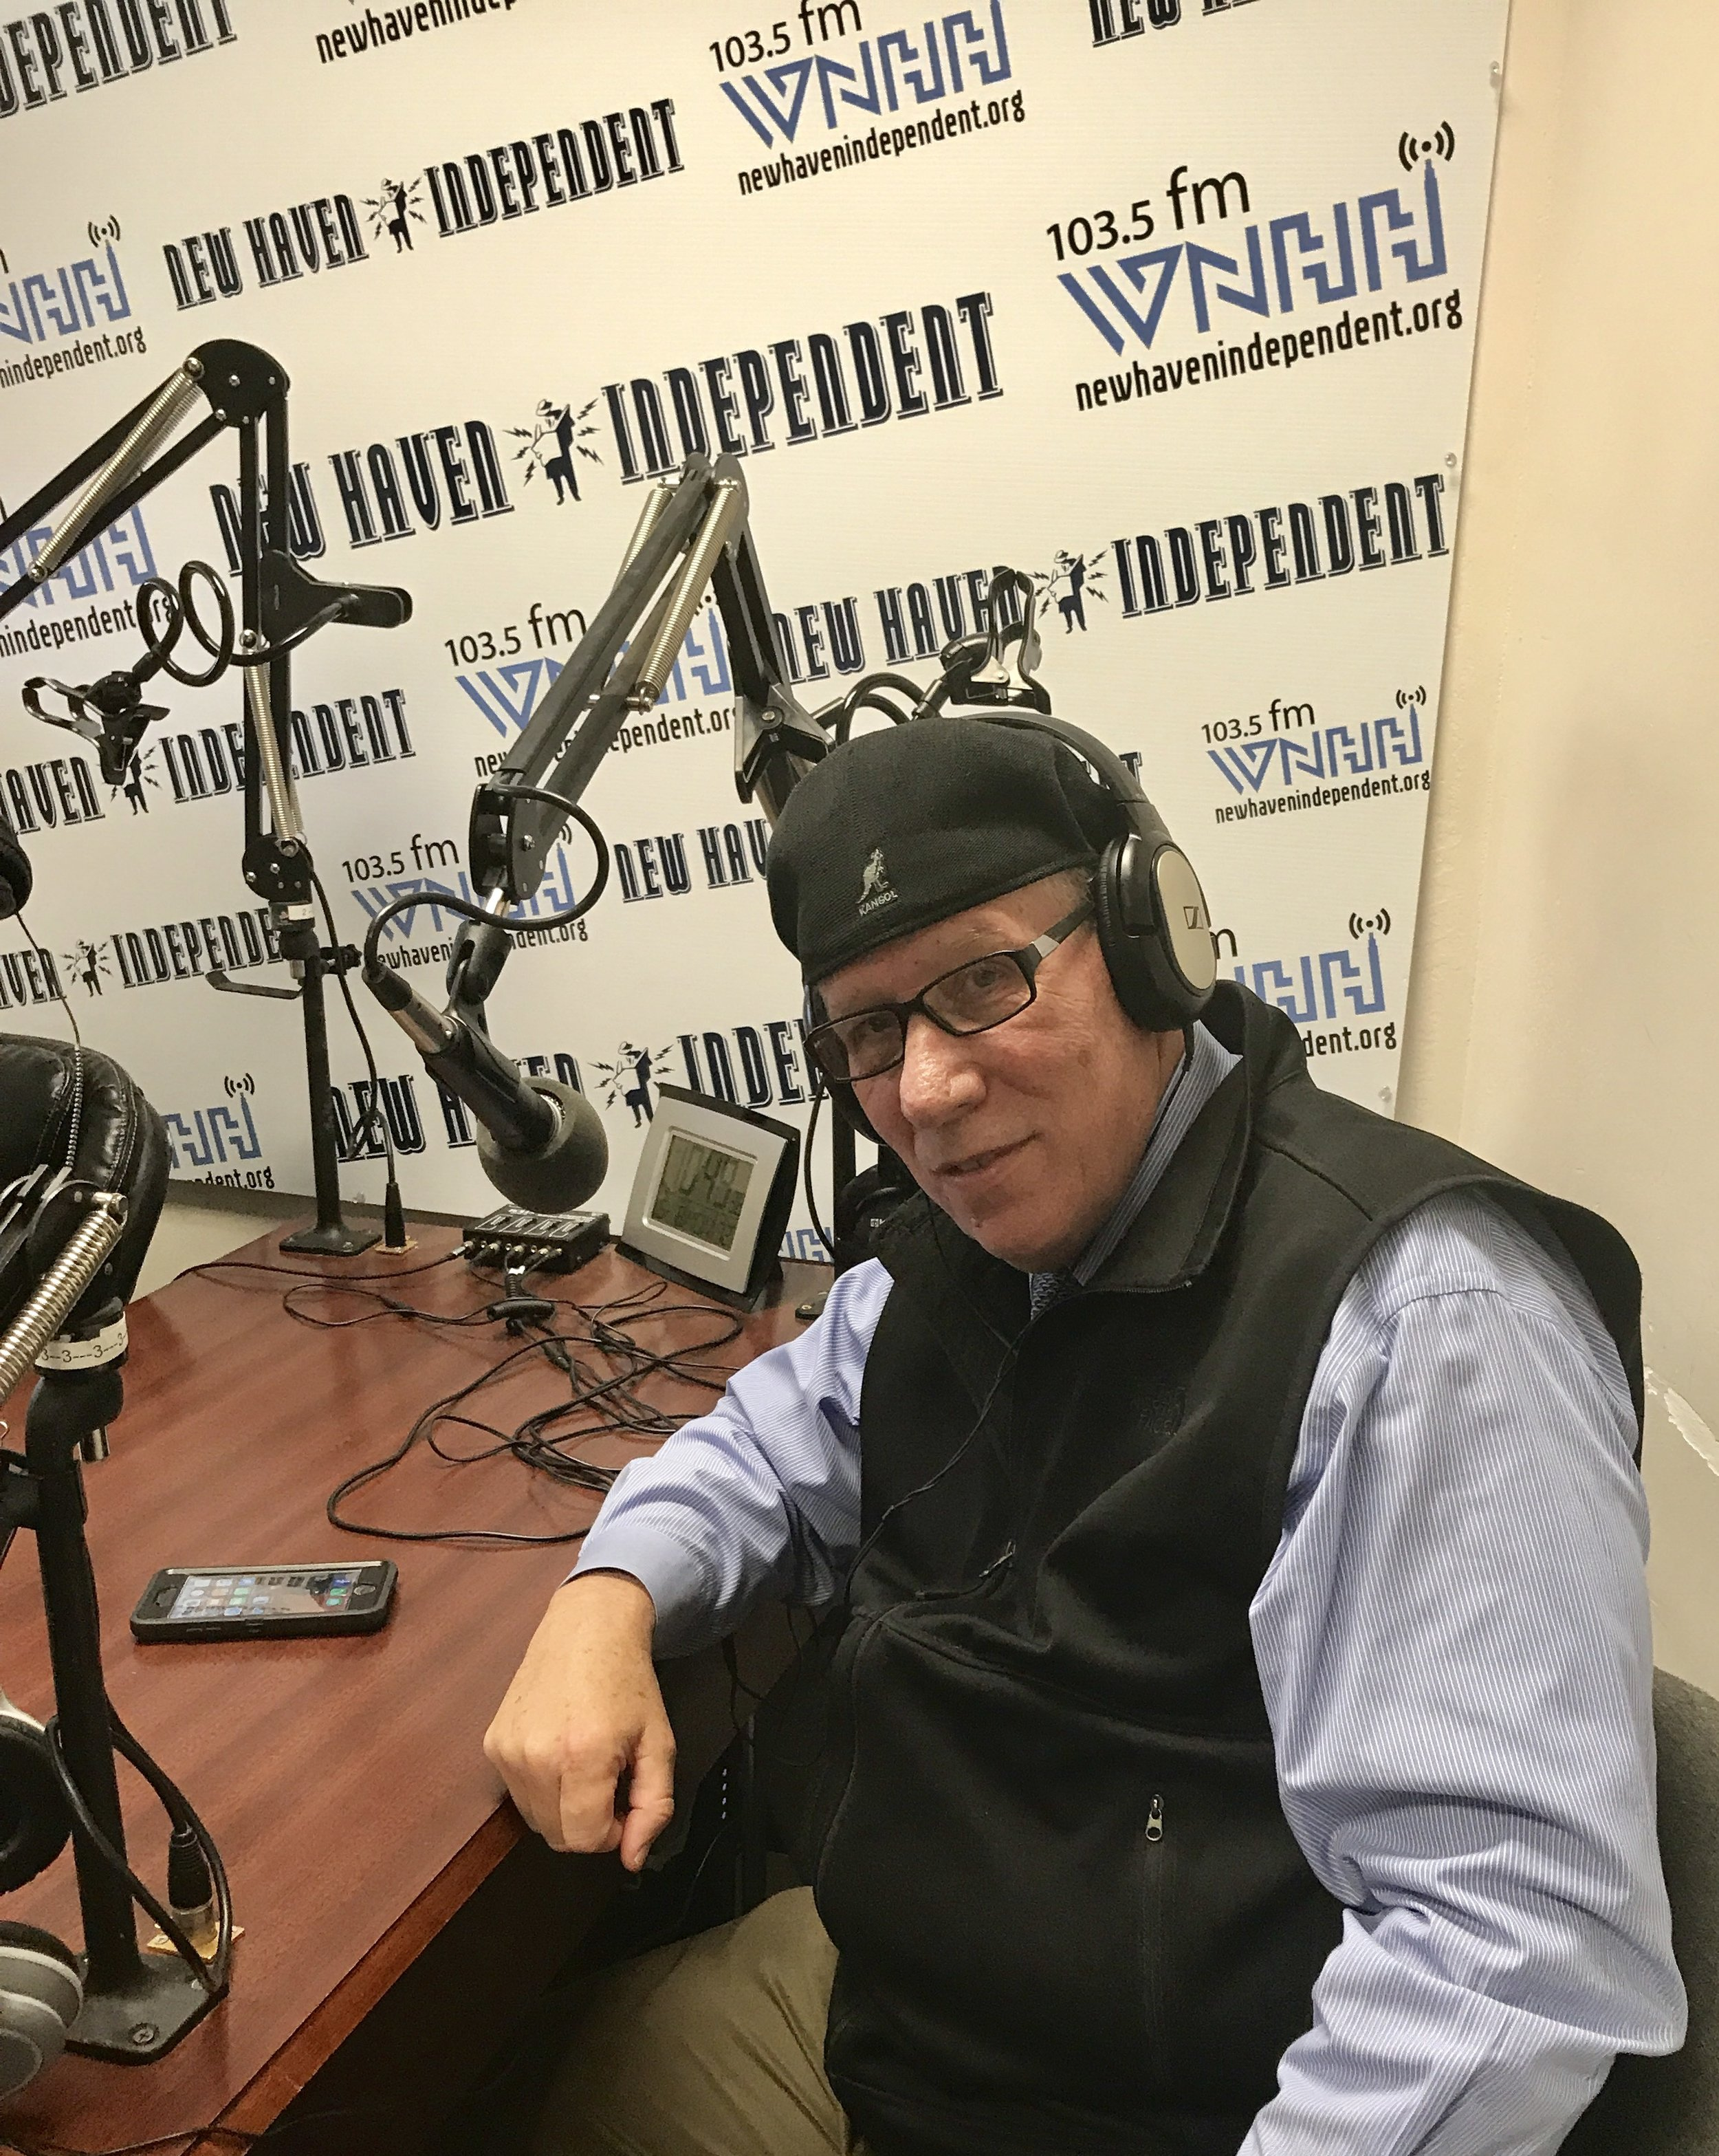 """Today on """"The Tom Ficklin Show"""" host Tom Ficklin talks with Jesse """"The Walking Man"""" Turner about his 2015 walk from Connecticut. He walked in order to raise awareness of the nations poor public schools, and to support parents, teachers and children."""